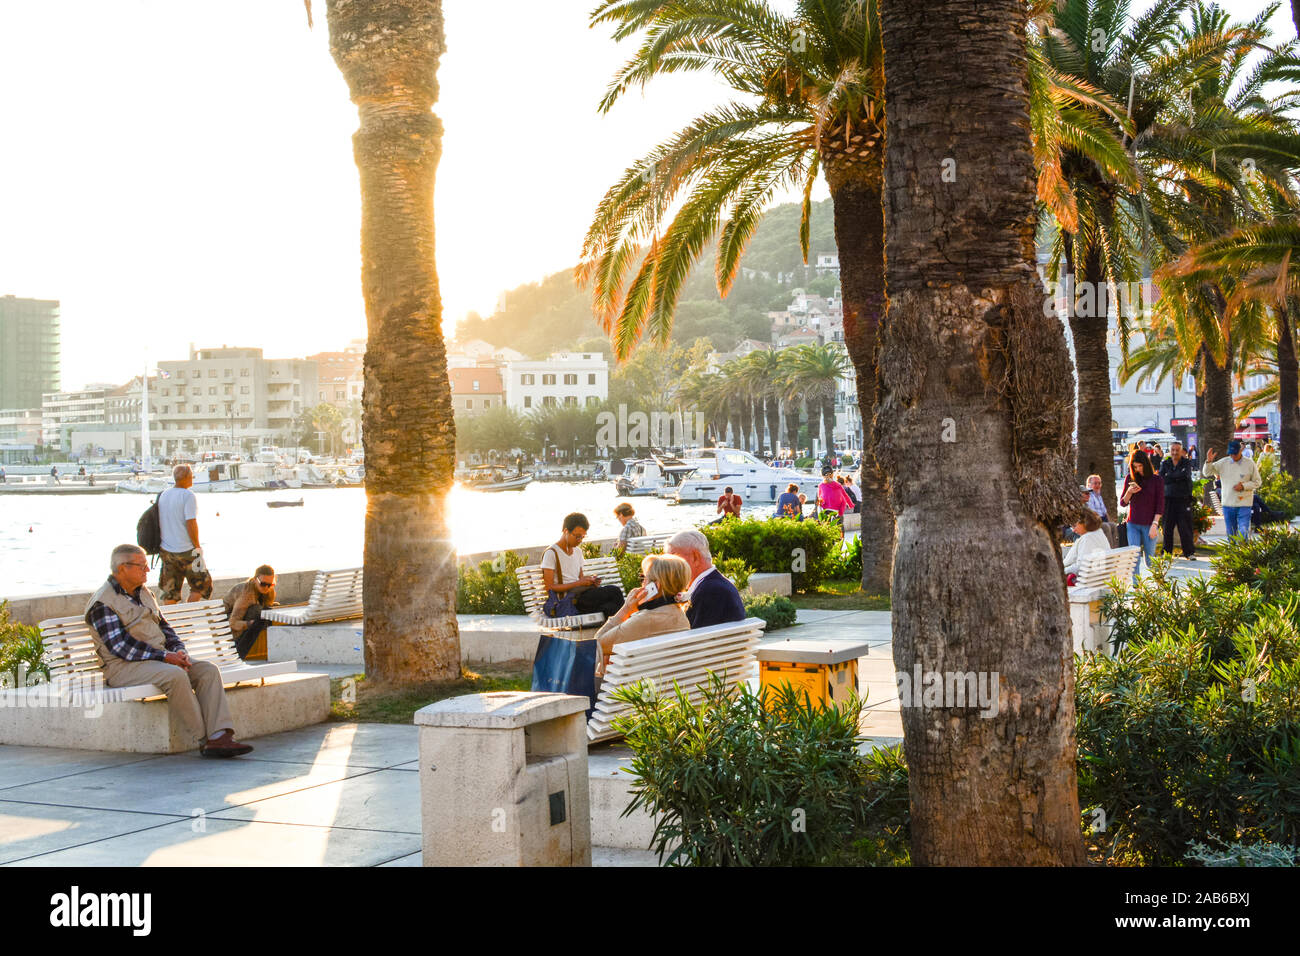 Afternoon at the Riva Promenade at the harbor of Split Croatia as tourists enjoy watching boats at sea and relax under the palm trees. Stock Photo